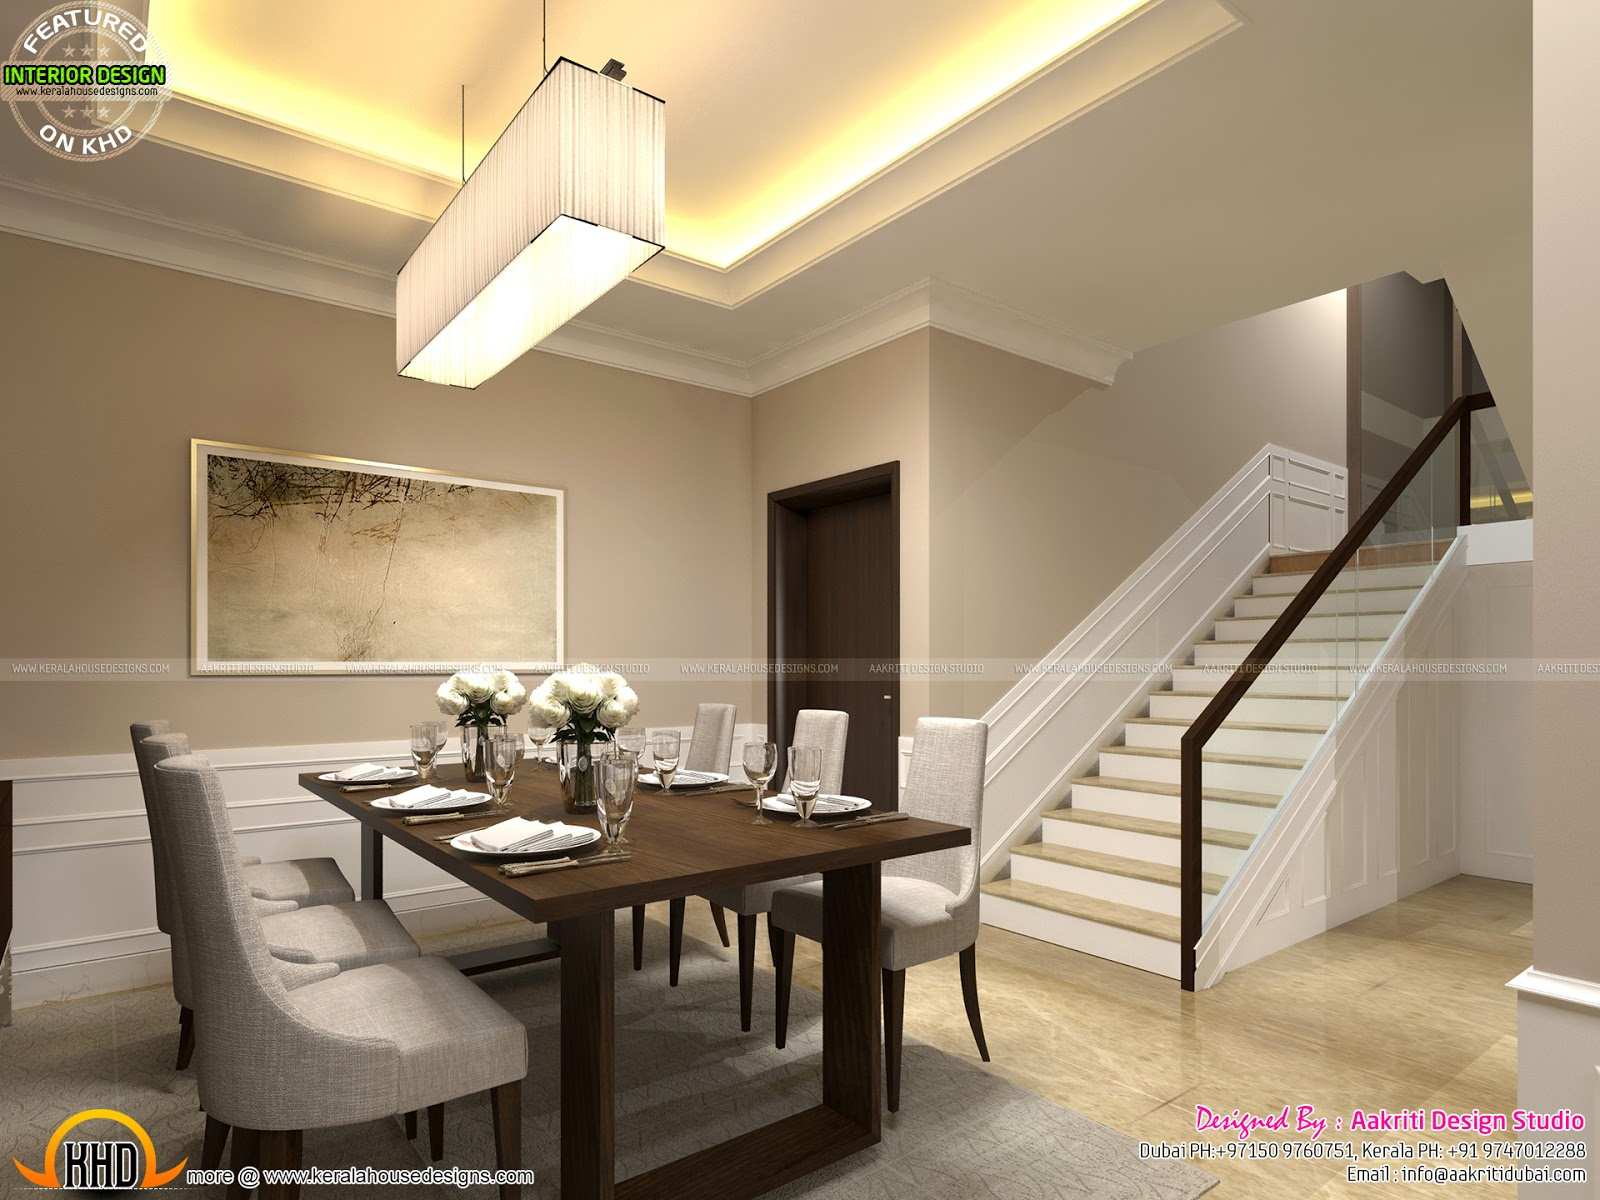 Classic style interior design for living room, stair area